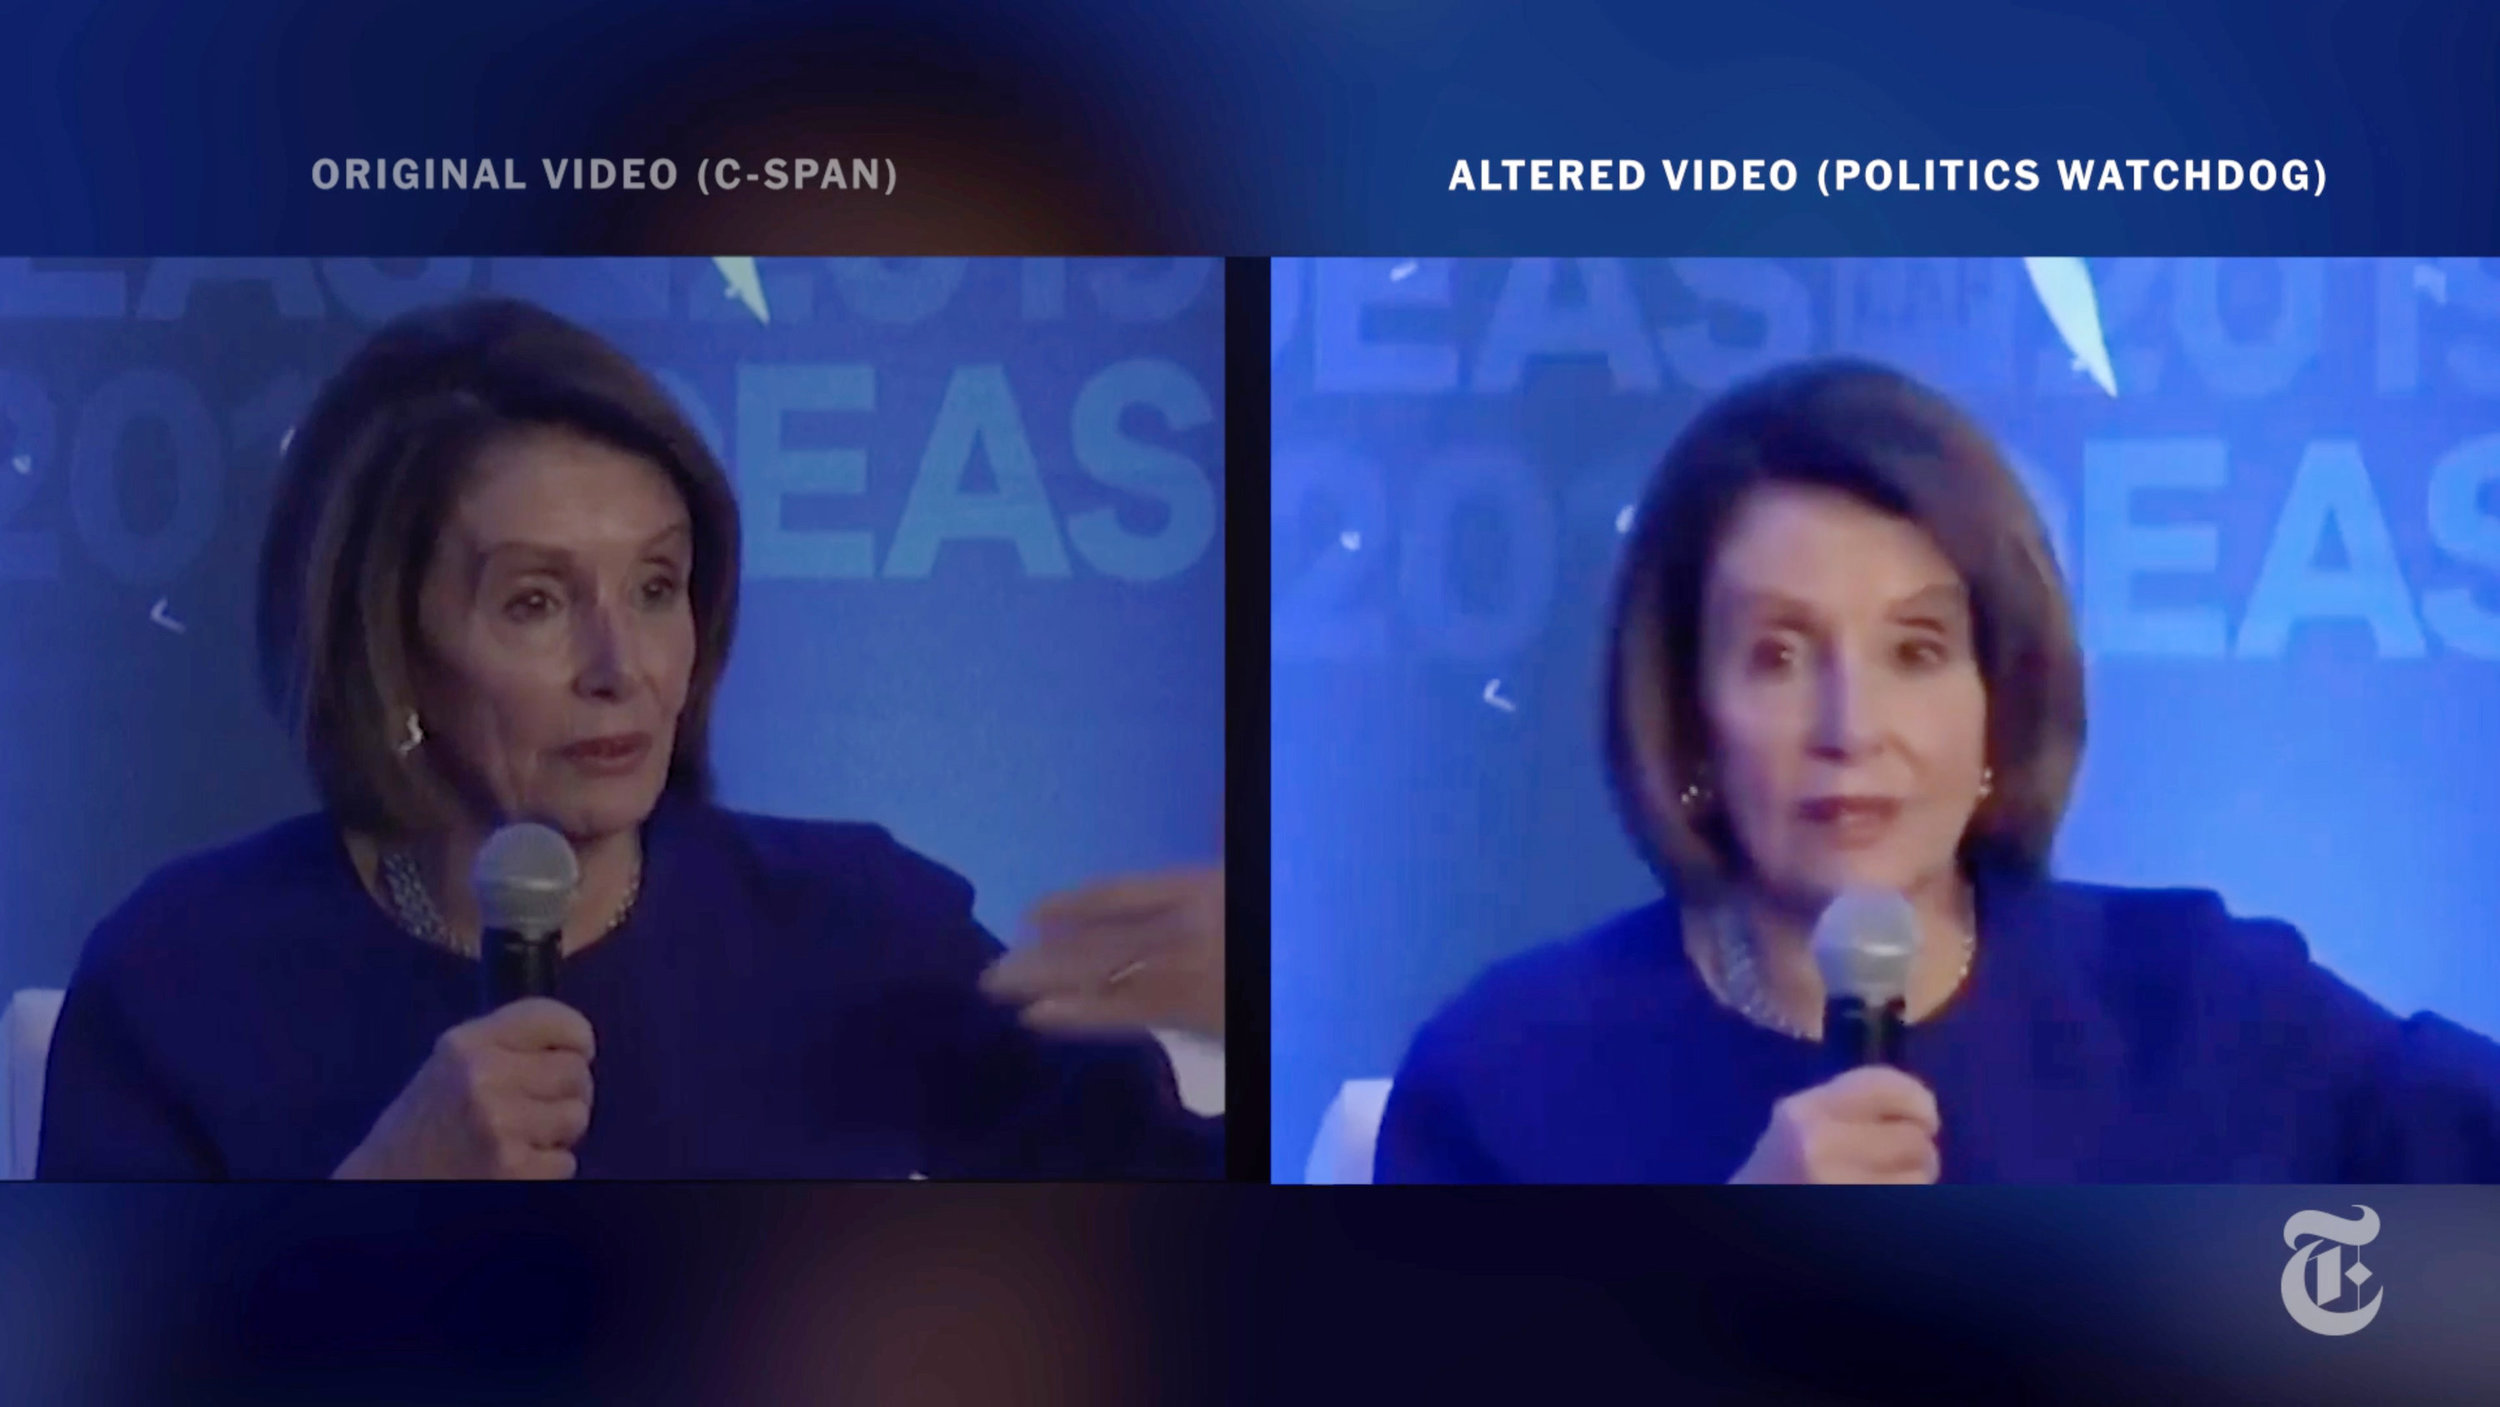 House Speaker Nancy Pelosi was a high-profile victim of altered video intended to embarrass her for slurring her speech as if drunk. The technology for doctoring photos and videos has become commonplace, but the tools and techniques to detect and defend against visual forgeries is not as widespread. It should be.